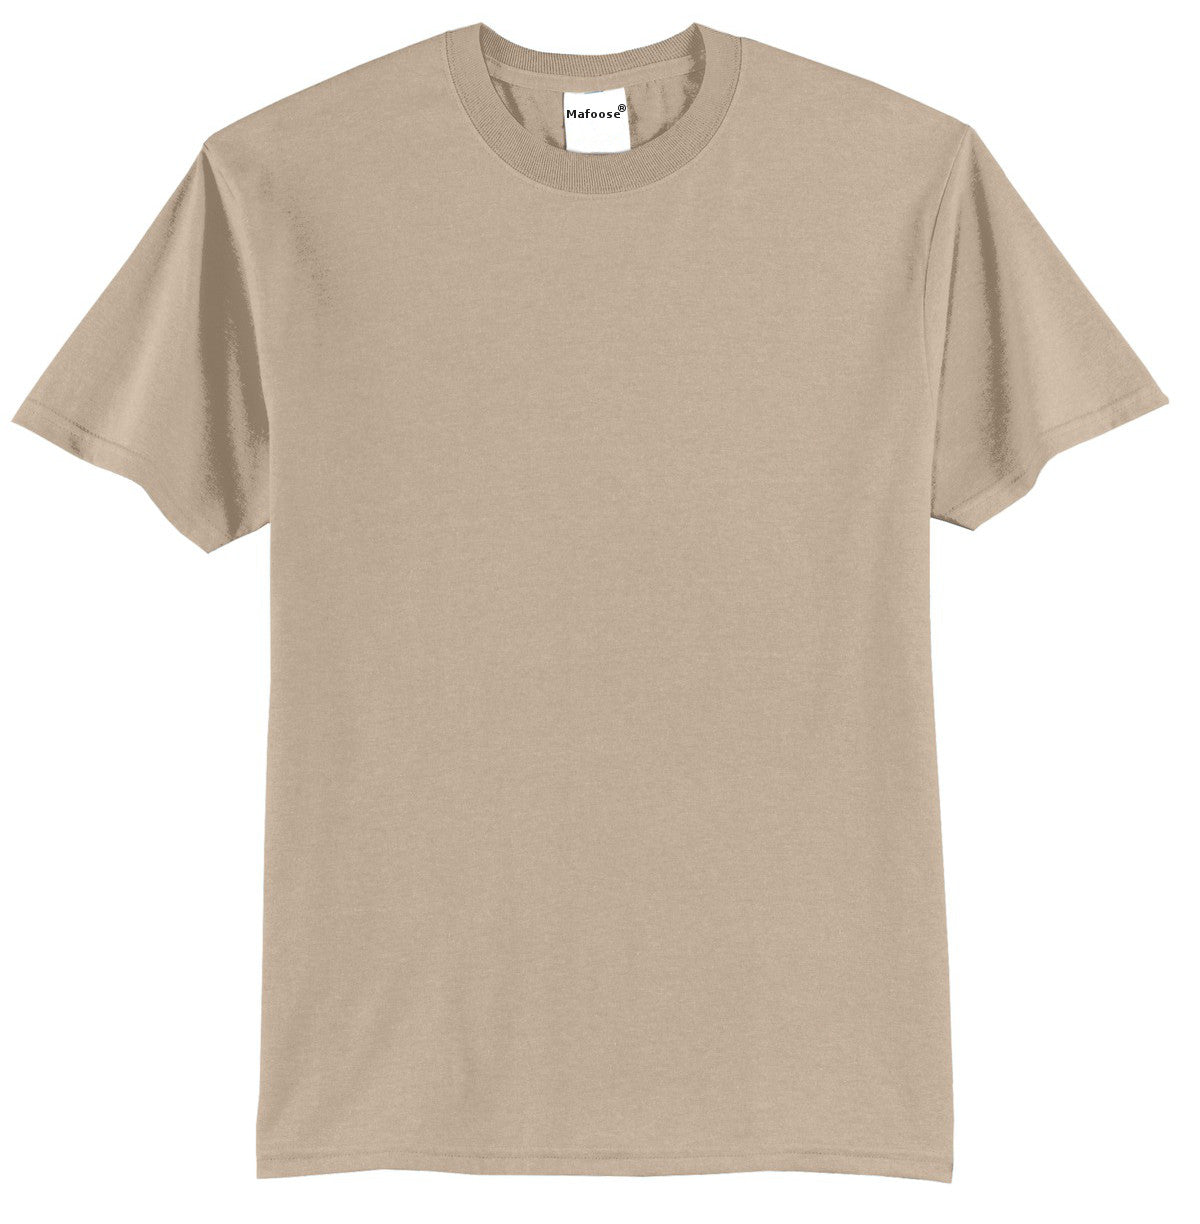 Mafoose Men's Core Blend Tee Shirt Desert Sand